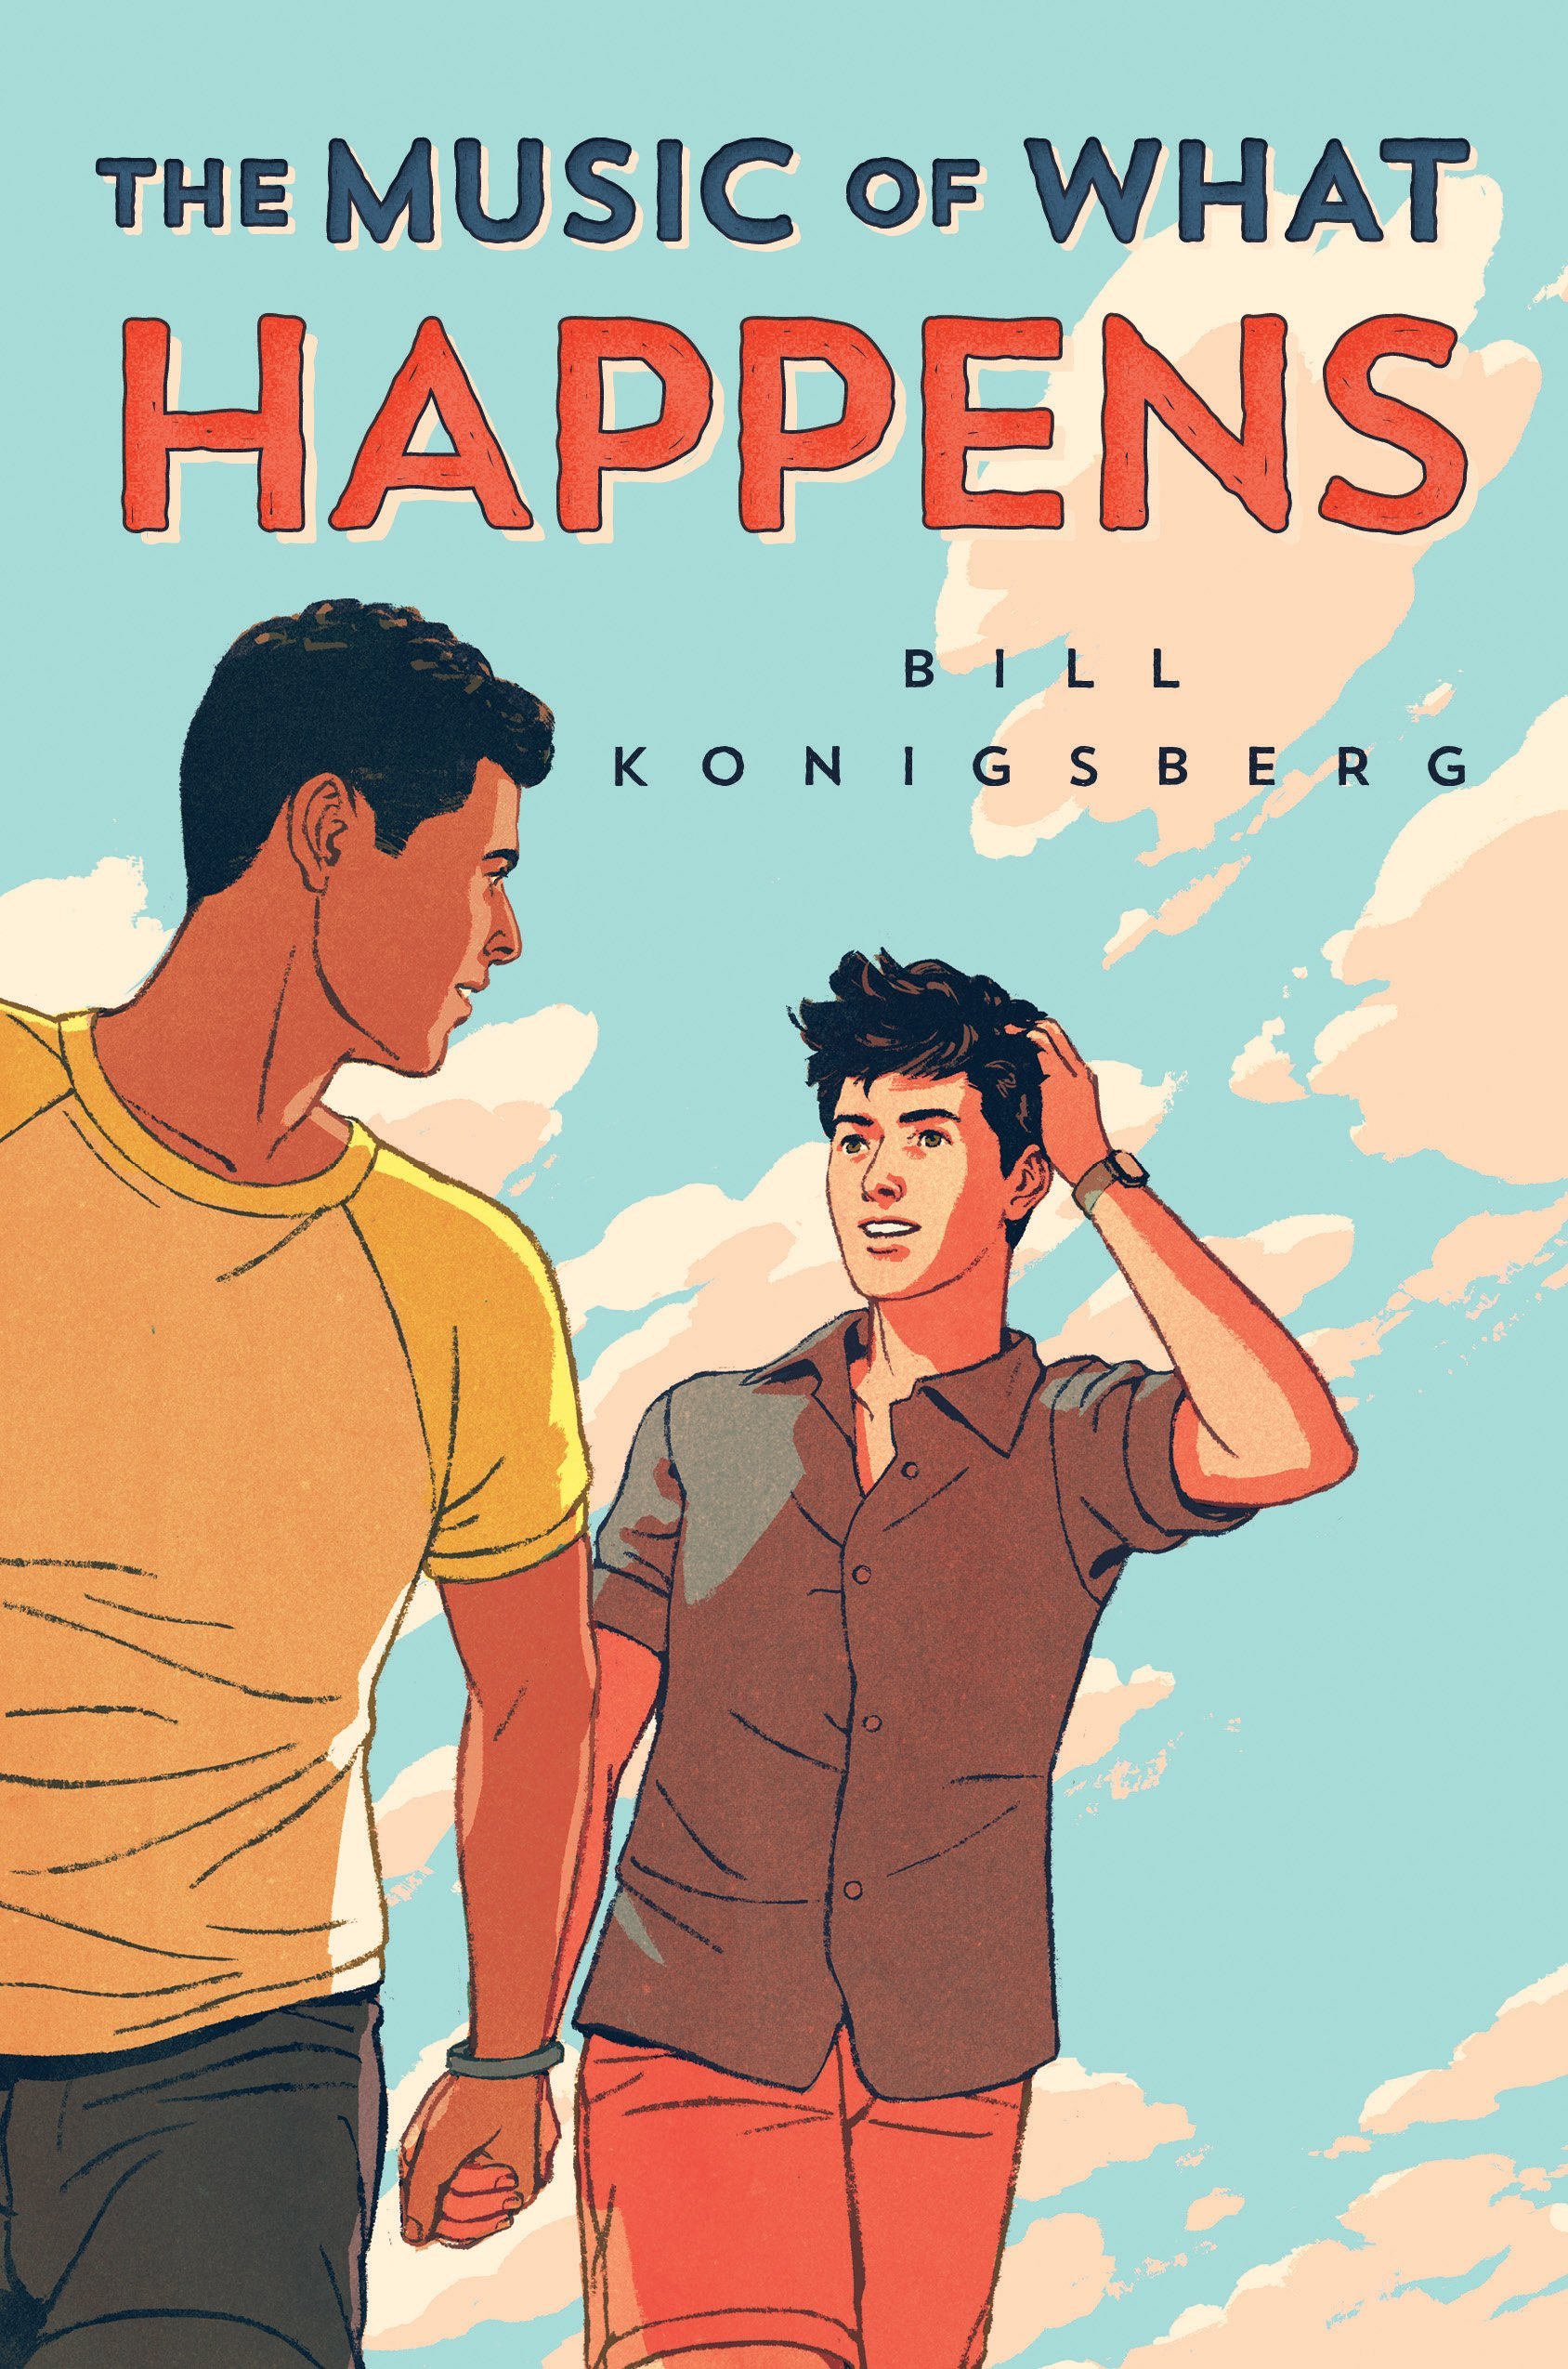 Image result for The Music of What Happens by Bill Konigsberg